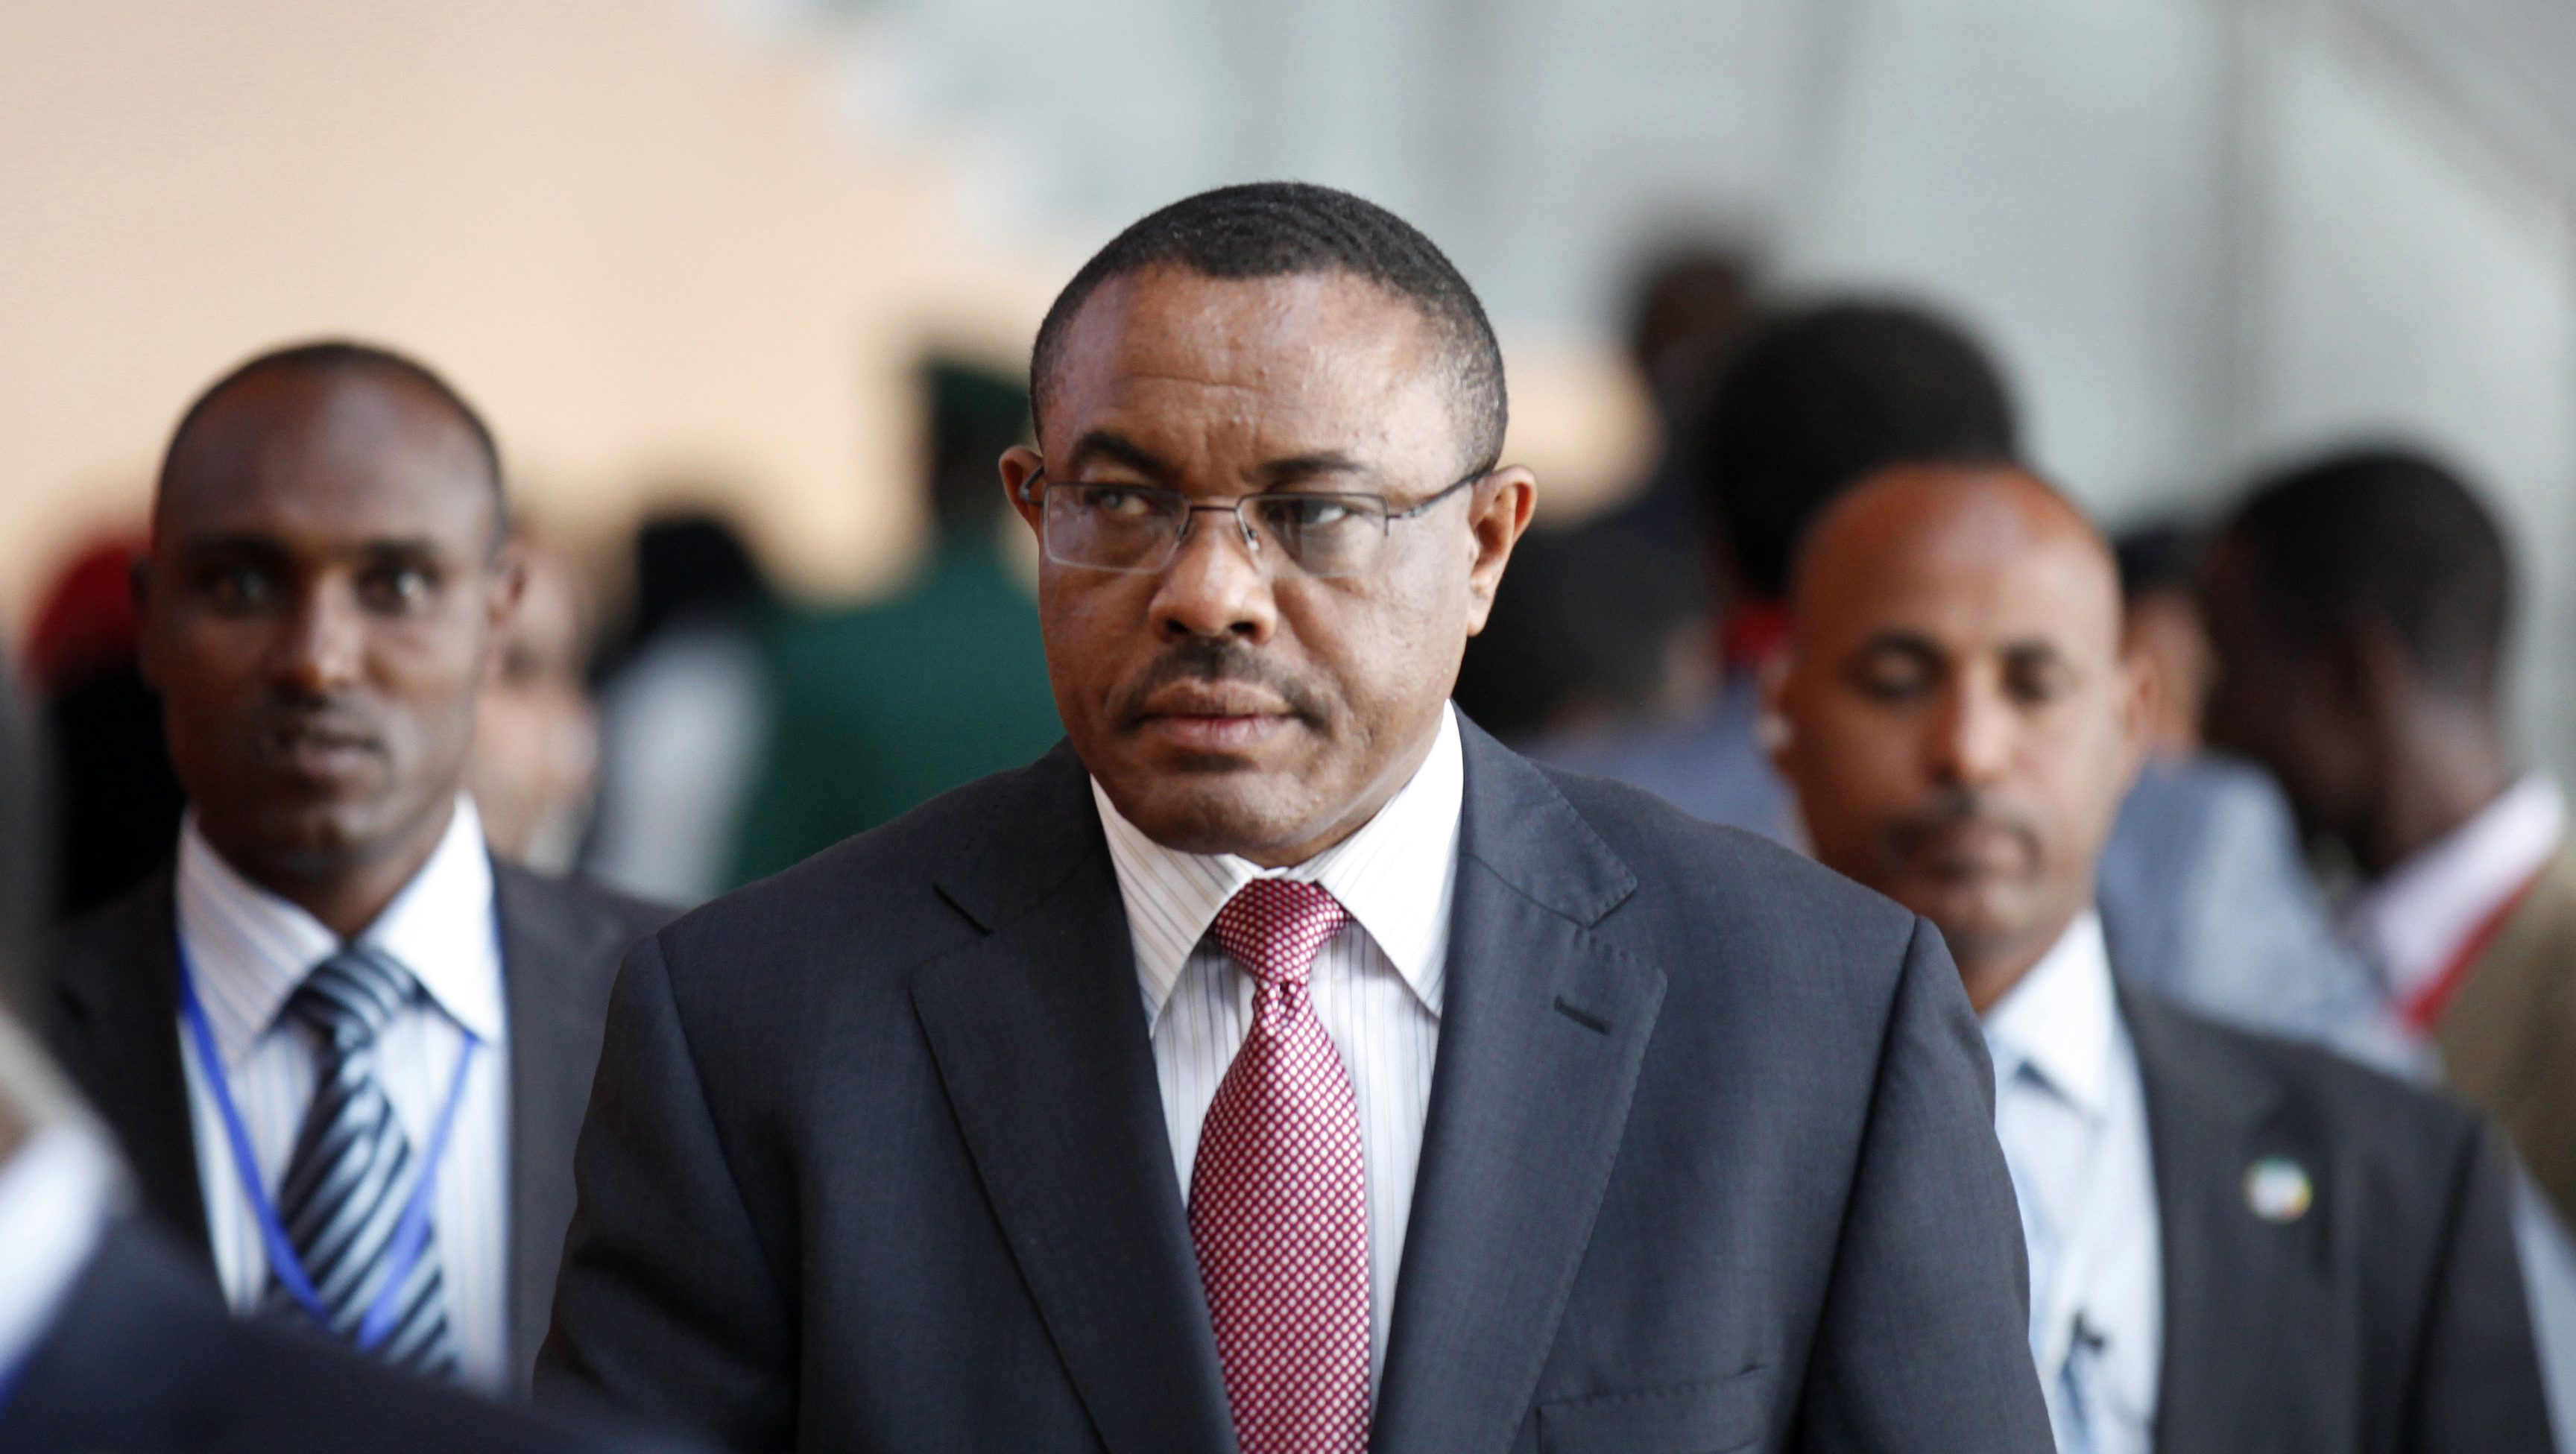 Ethiopian Prime Minister Hailemariam Desalegn arrives at the African Union Headquarters for the 21st Ordinary Session of the Assembly of Heads of States and Government in capital Addis Ababa May 26, 2013.